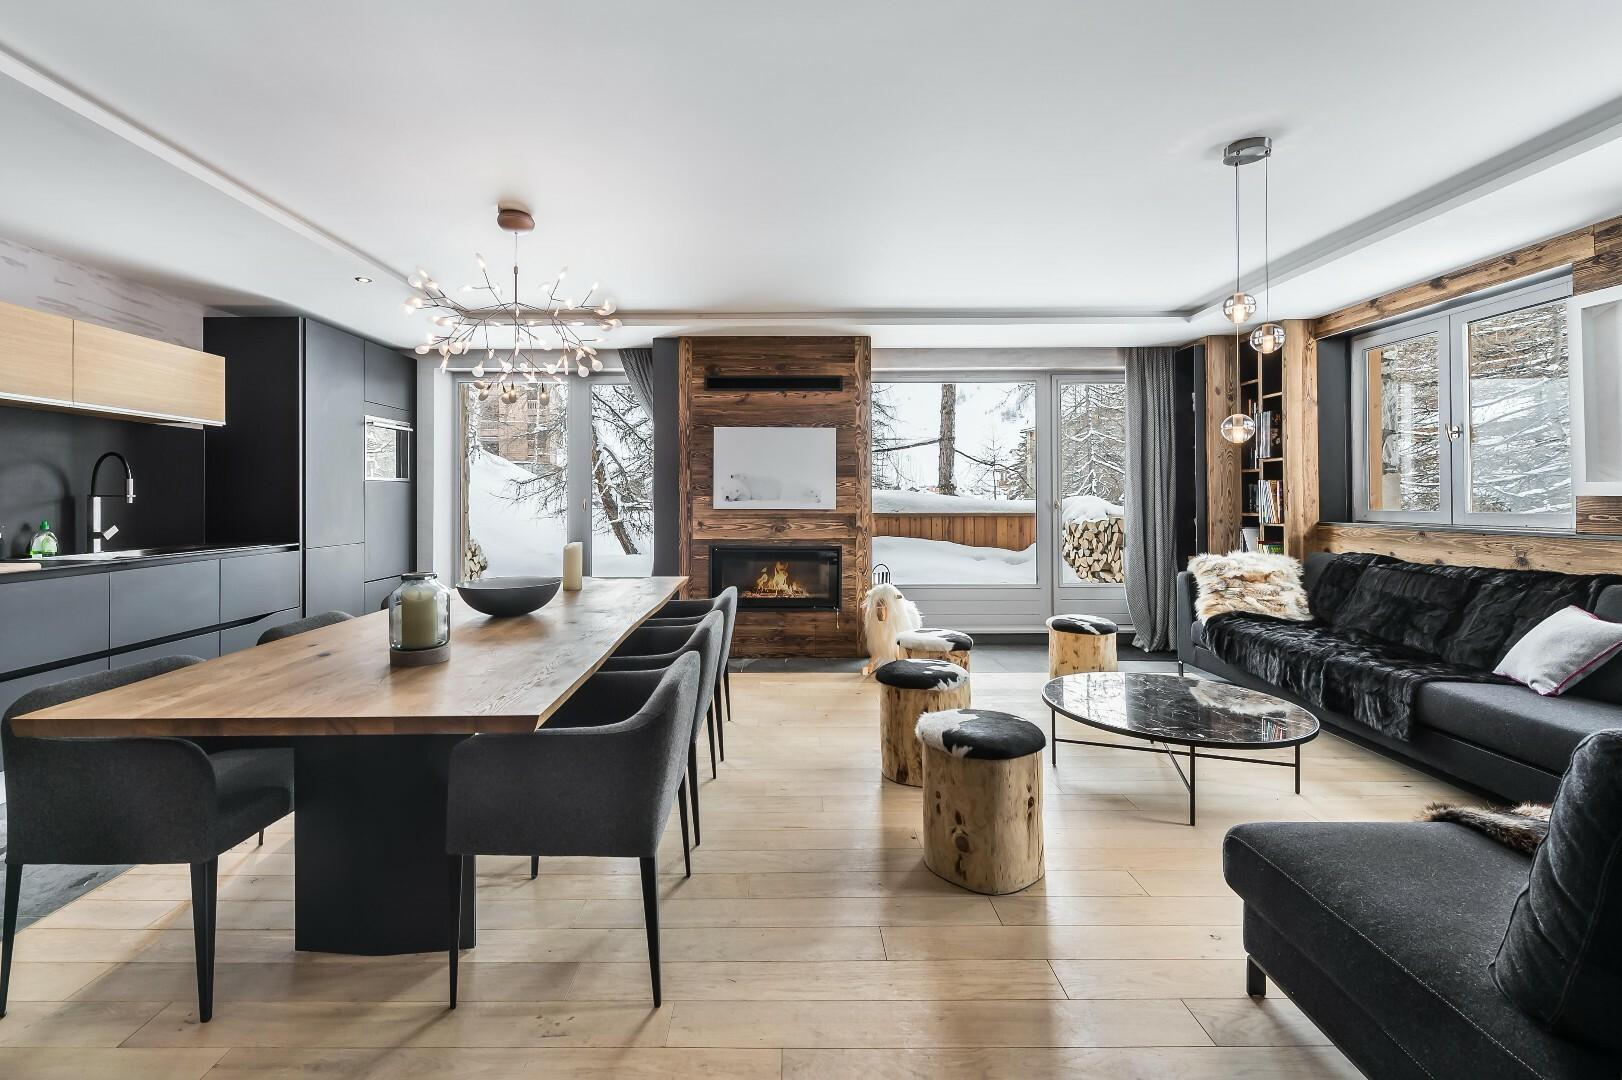 DUPLEX AT THE FOOT OF THE SLOPES